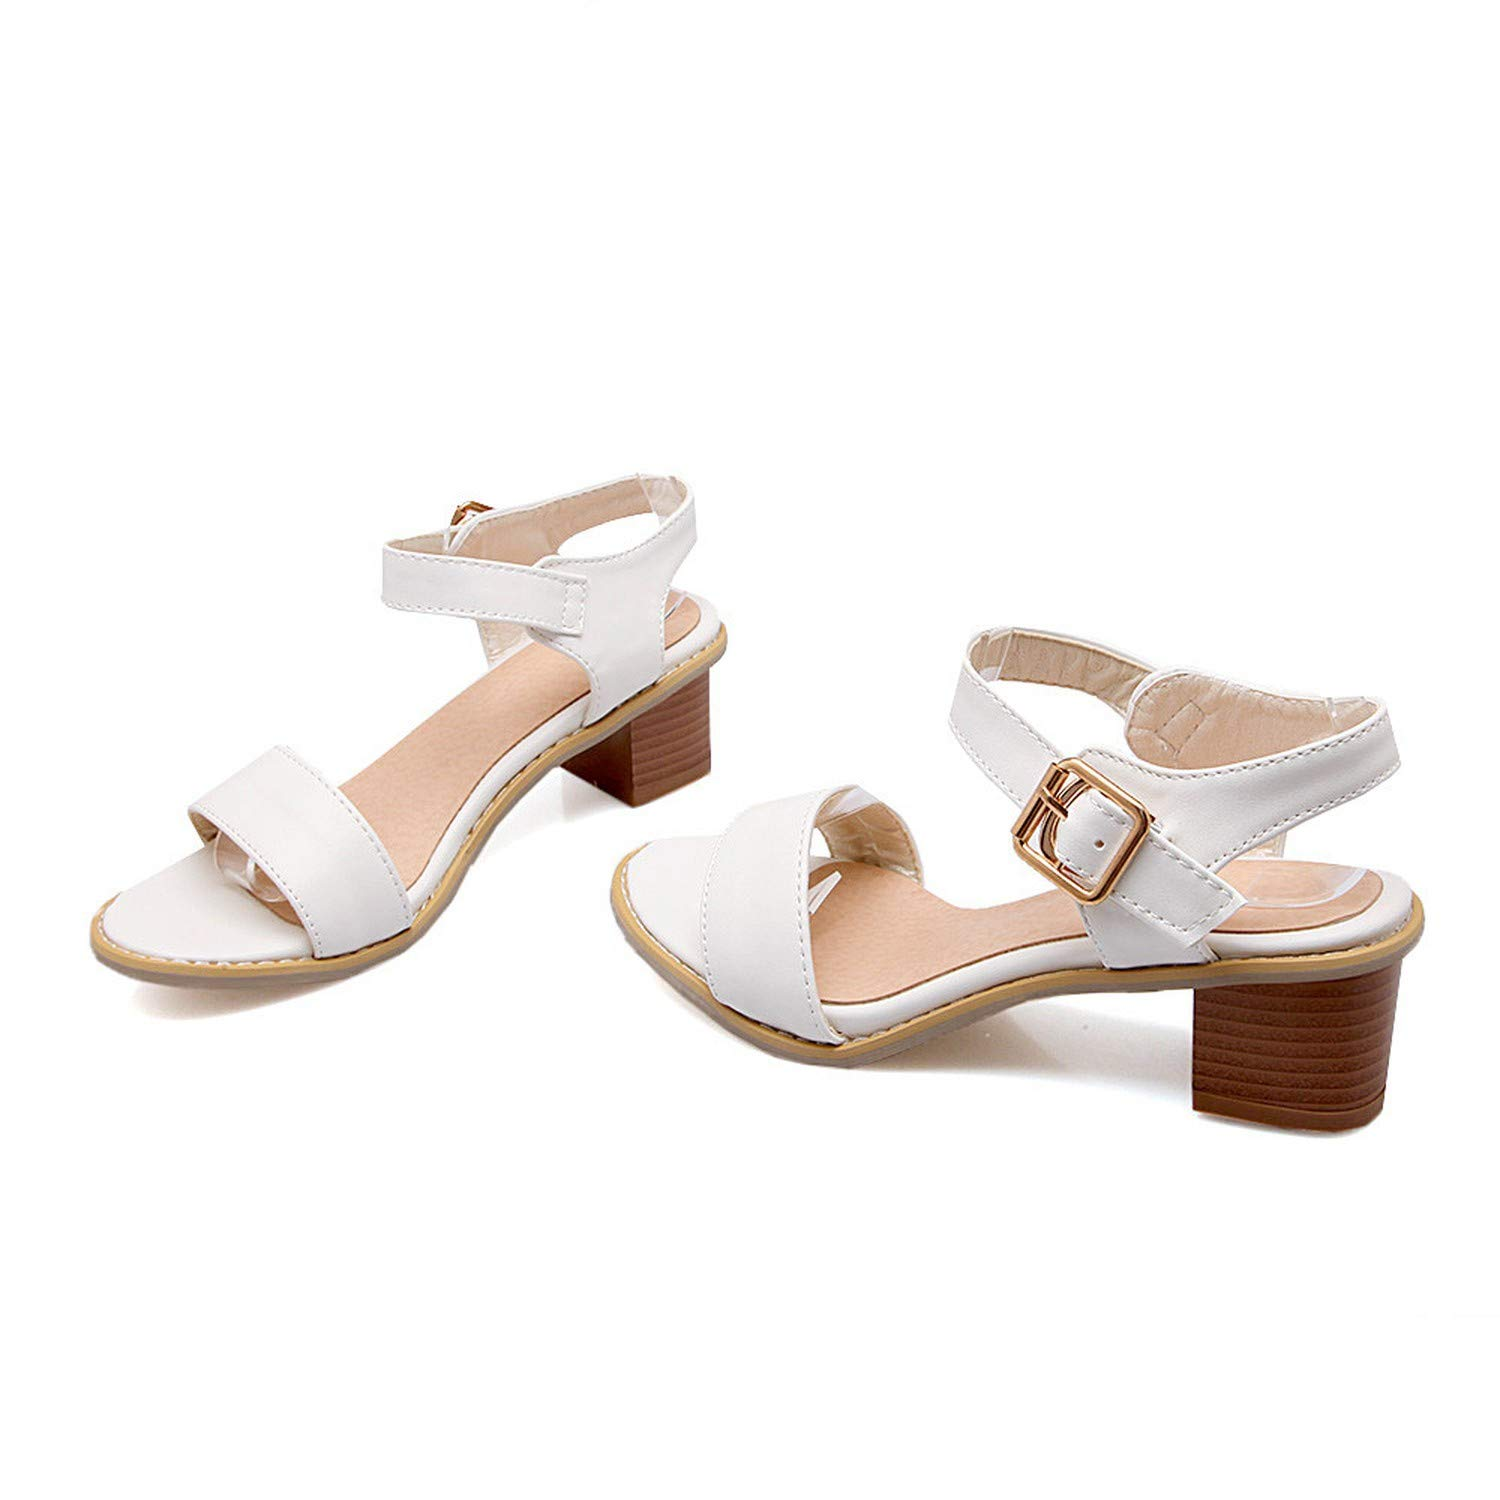 Women Sandals Simple Buckle Shoes Solid Casual Comfortable Square Heel Shoes